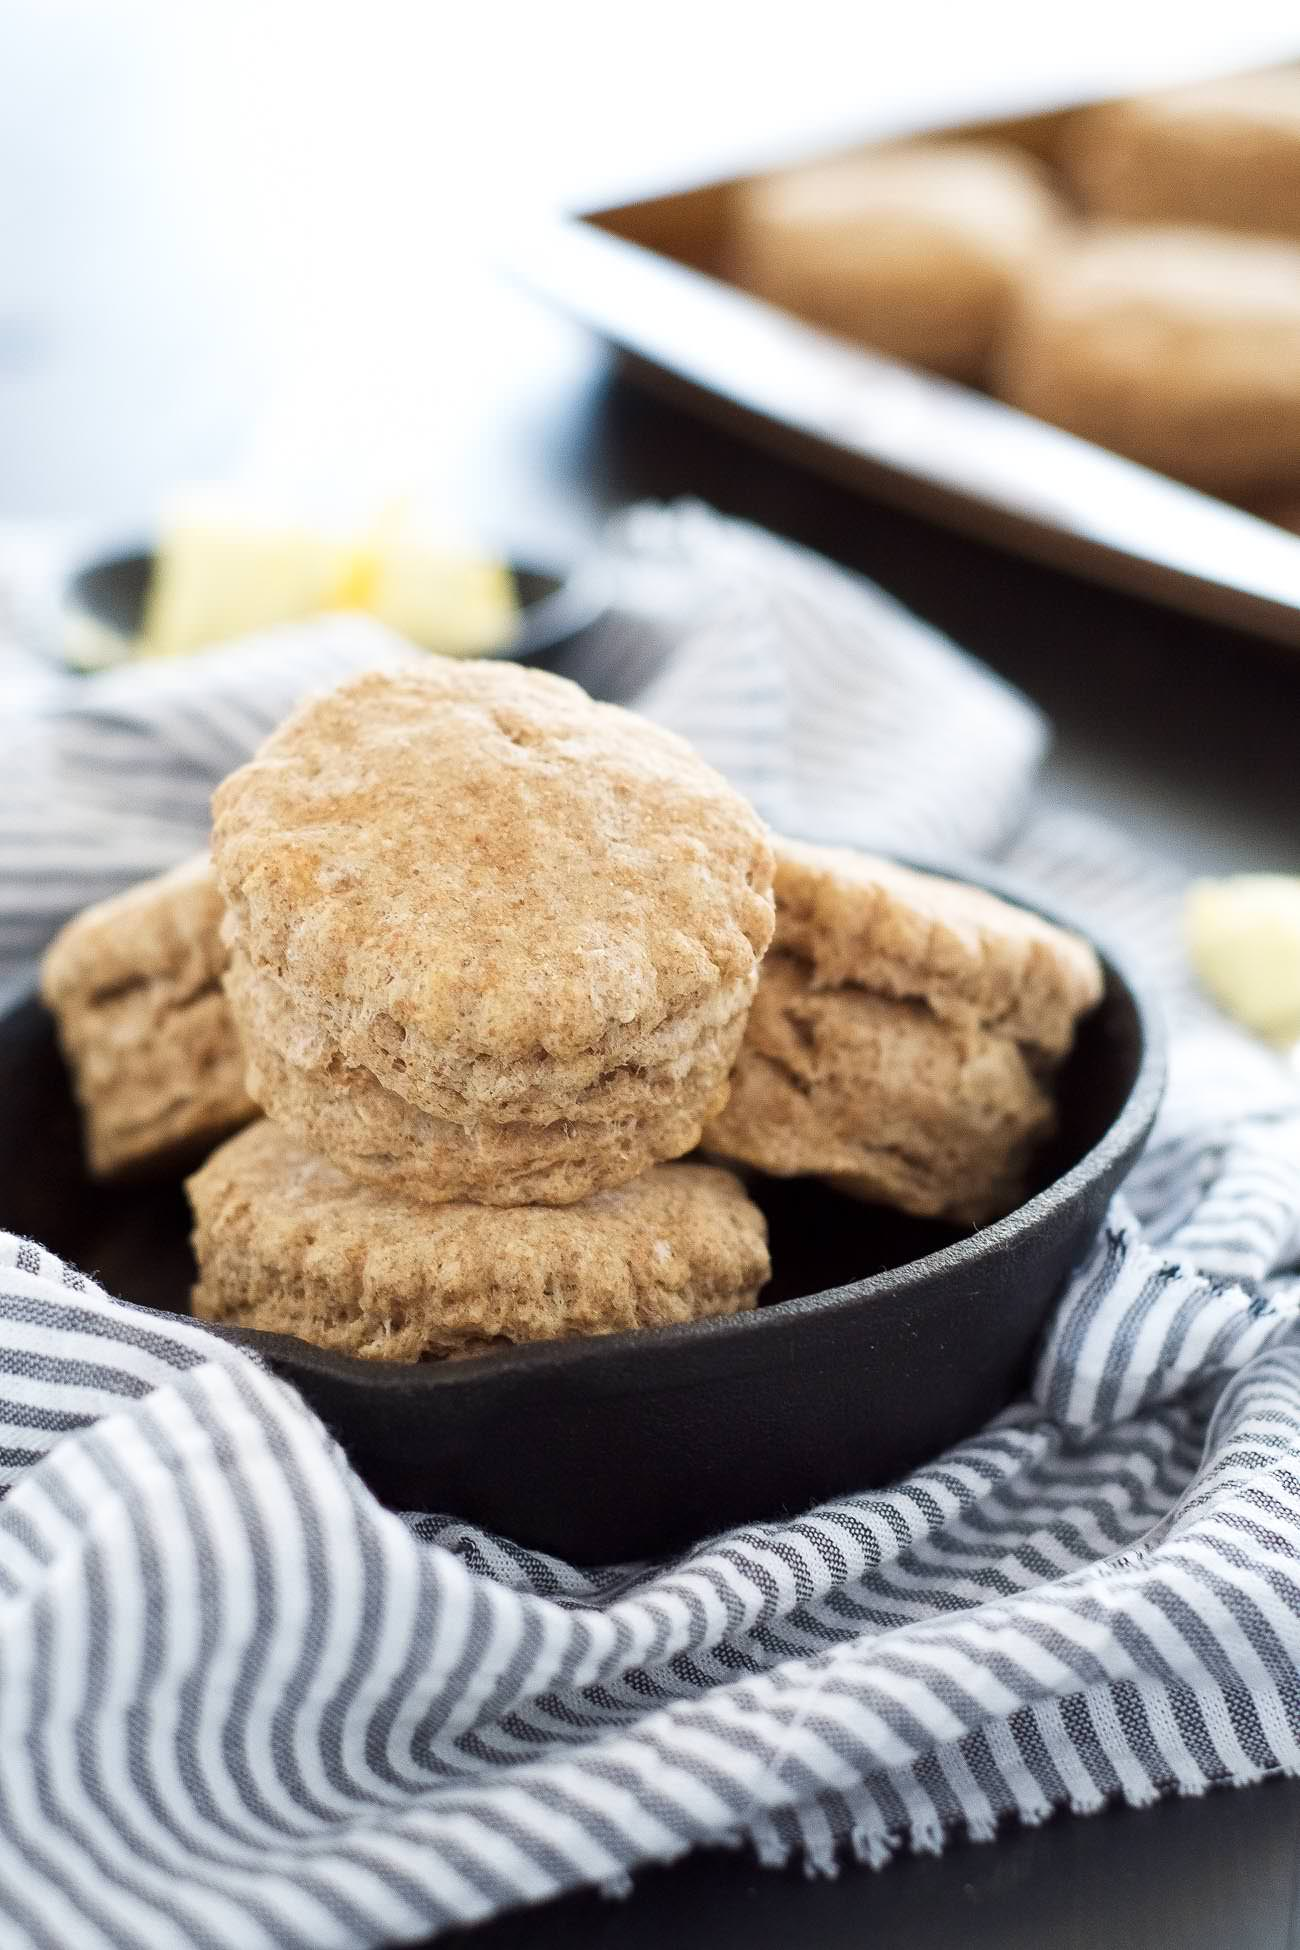 20 Minute Flaky Whole Wheat Biscuits